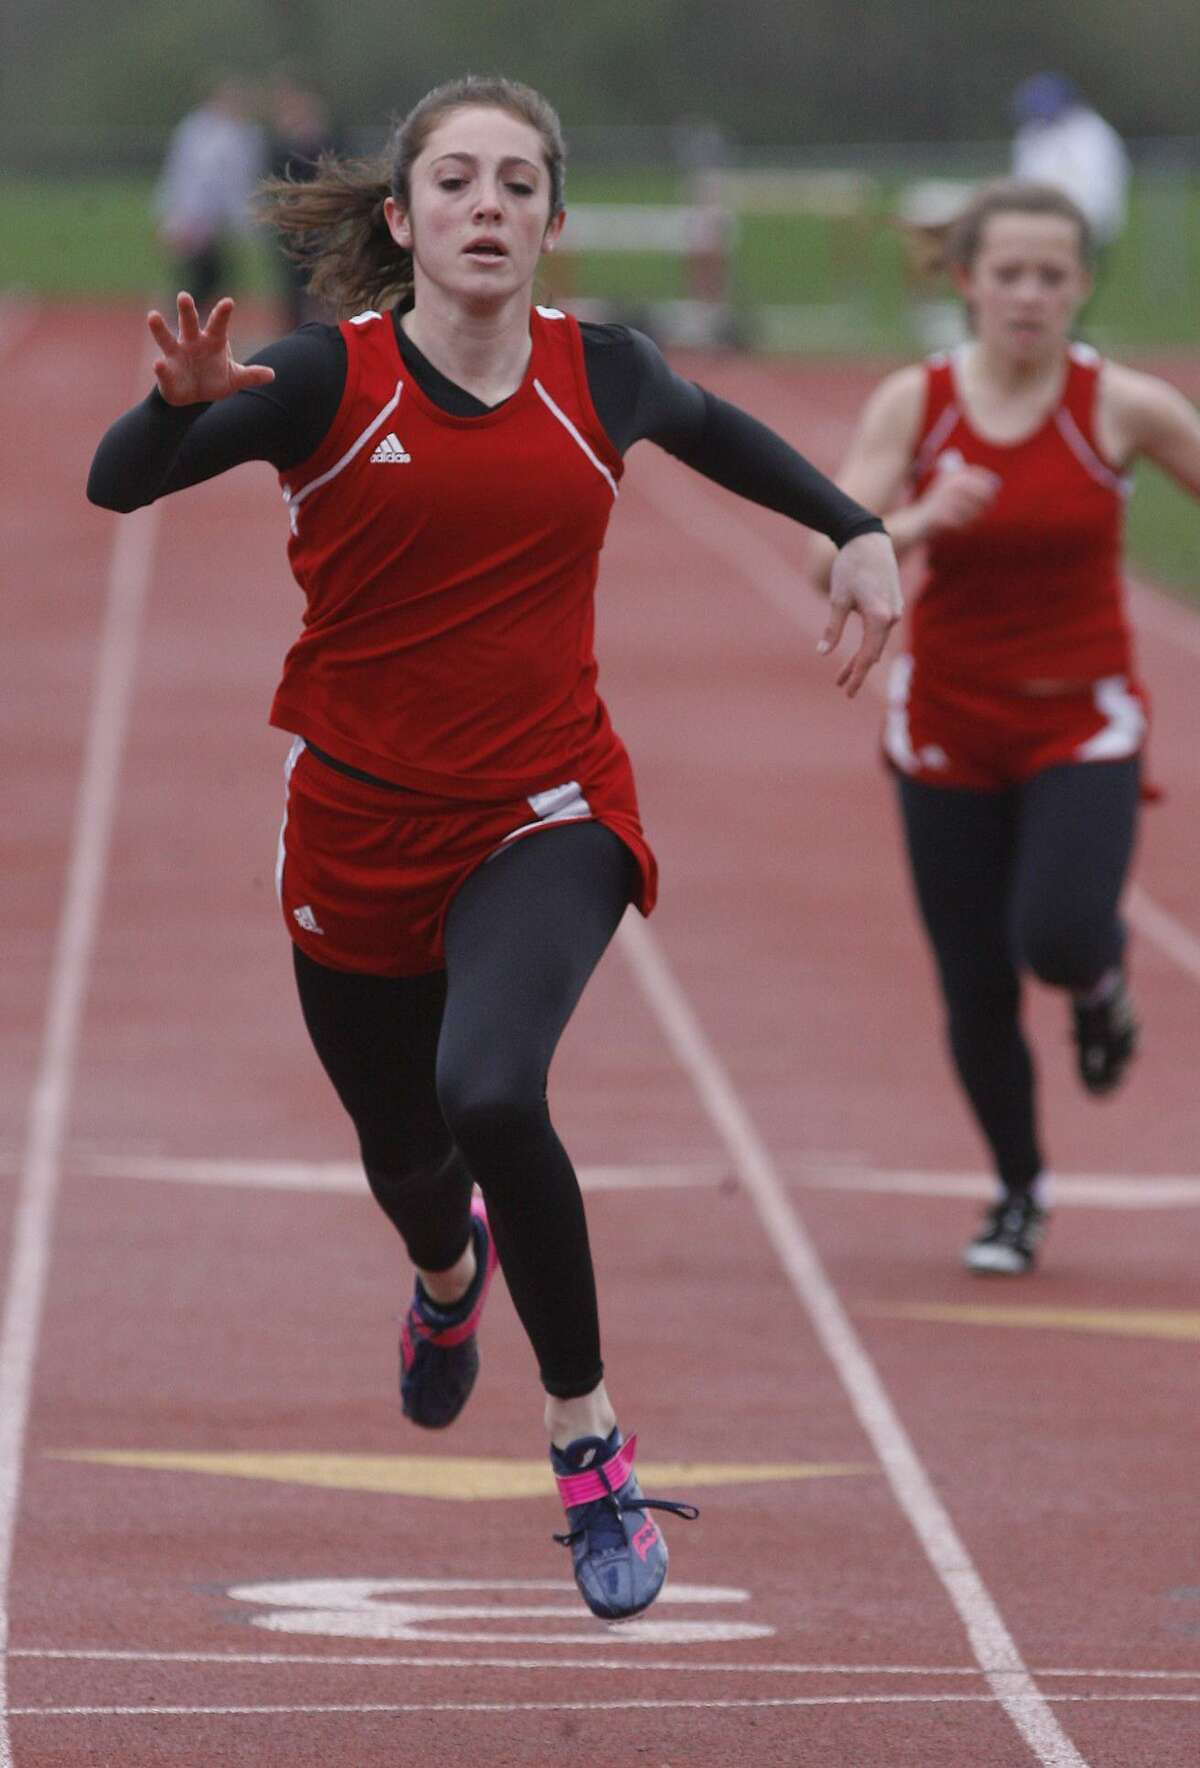 Dispatch Staff Photo by JOHN HAEGERVVS Maggie Curtis cross the finish line to win the 100 meter dash in a meet against Clinton on Wednesday, May 4, 2011 at VVS.